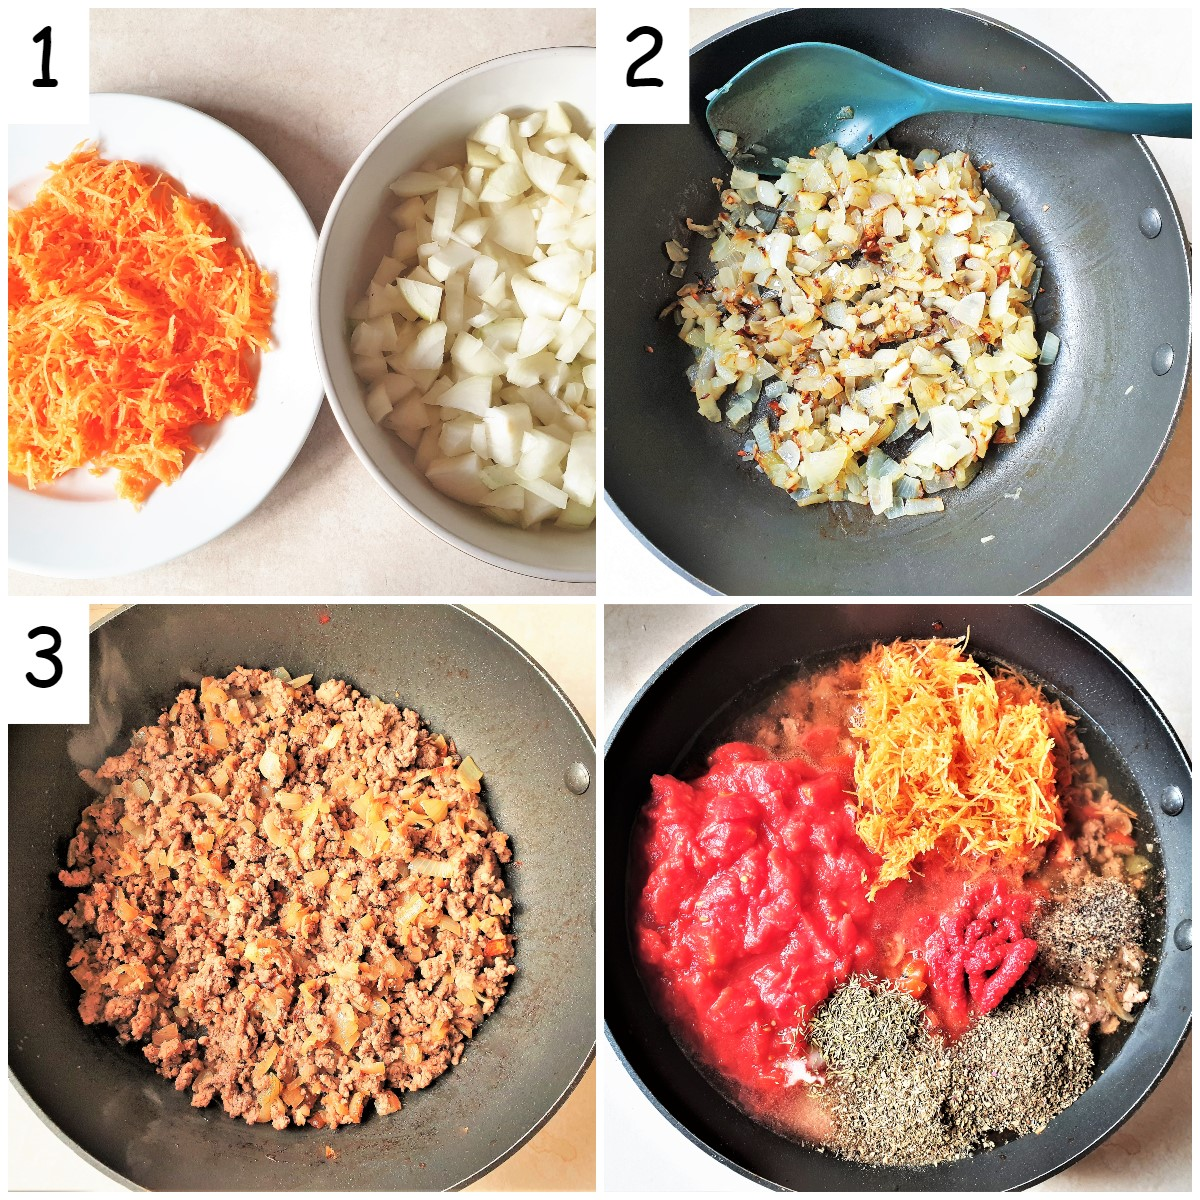 Steps for making spaghetti bolognese sauce.